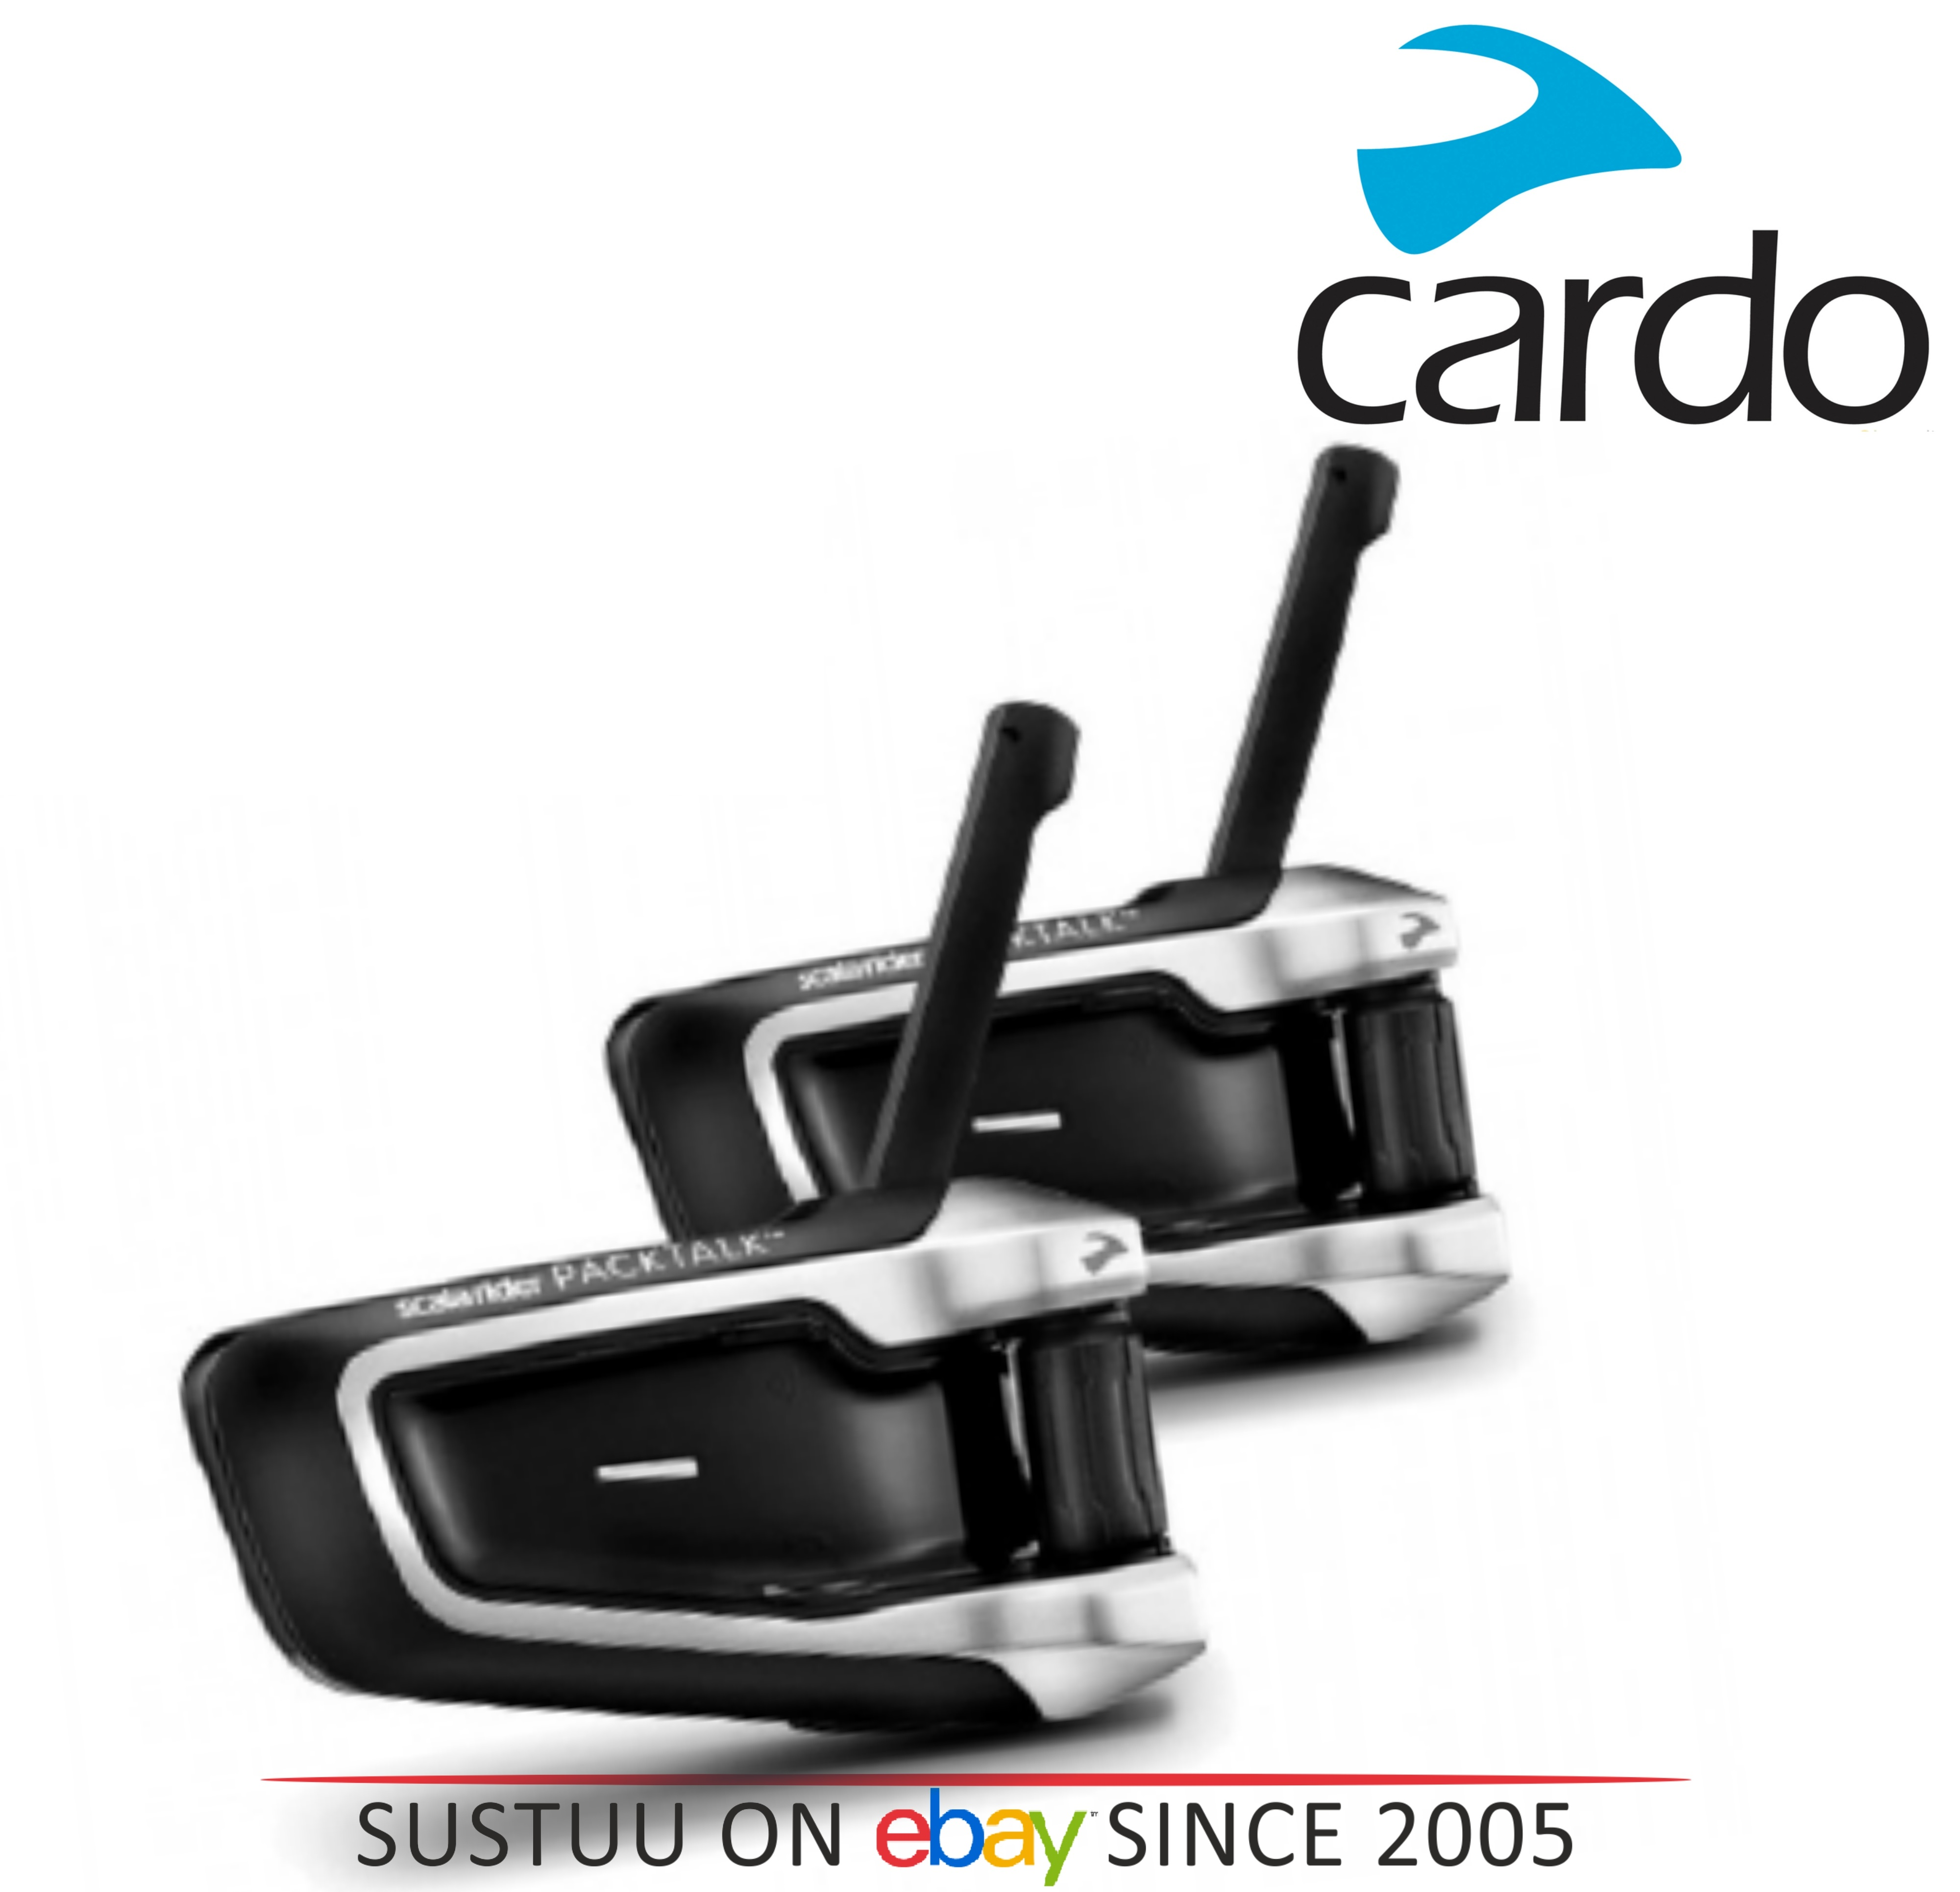 Cardo Scala Rider PackTalk|Duo MotorCycle Handsfree|2xBluetooth-Intercom-Headset